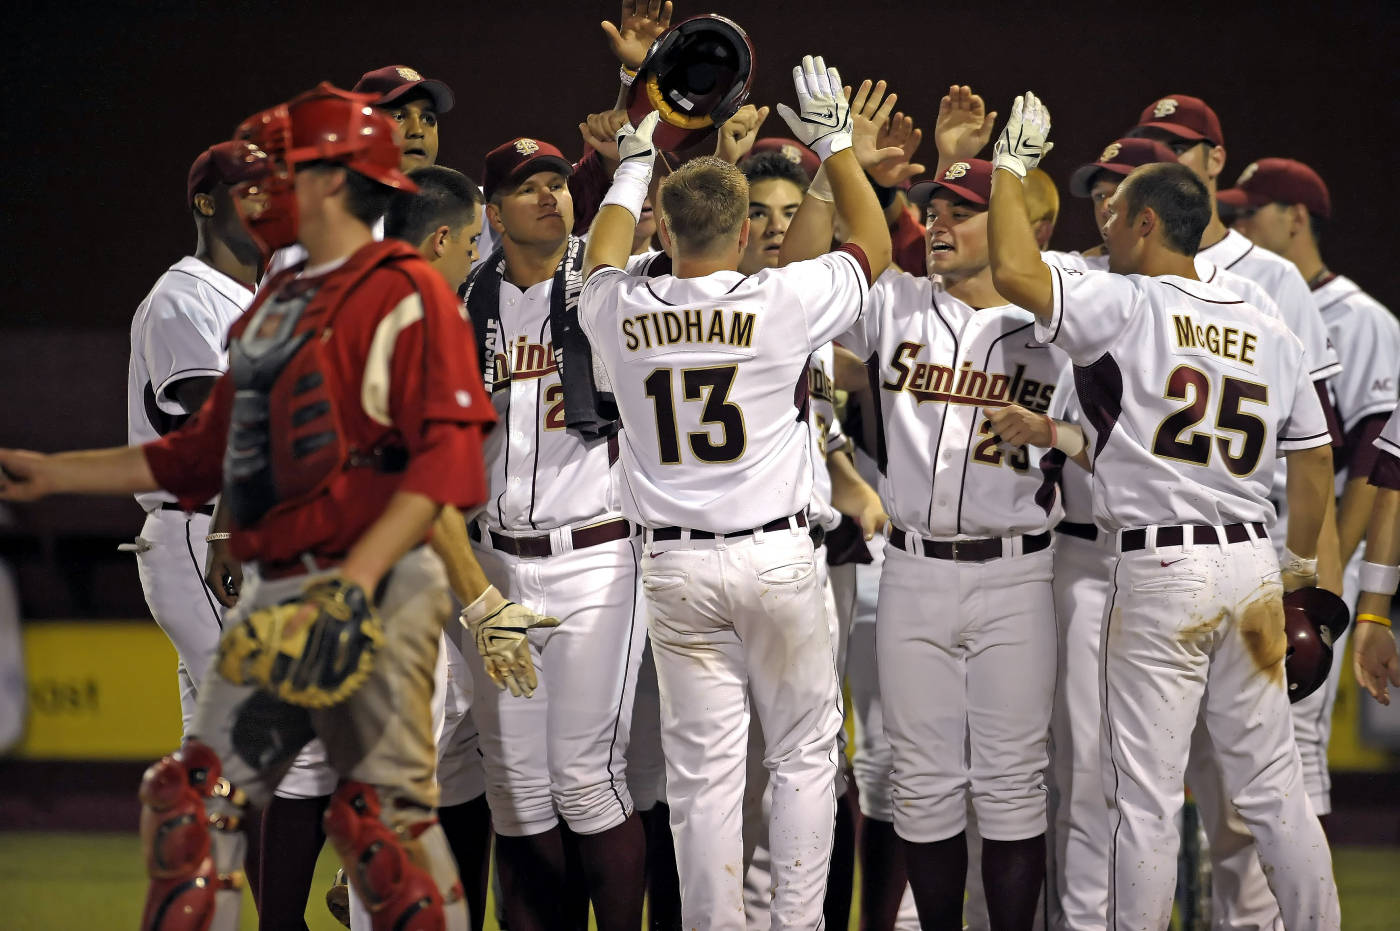 The Seminoles celebrate after a home run by Jason Stidham